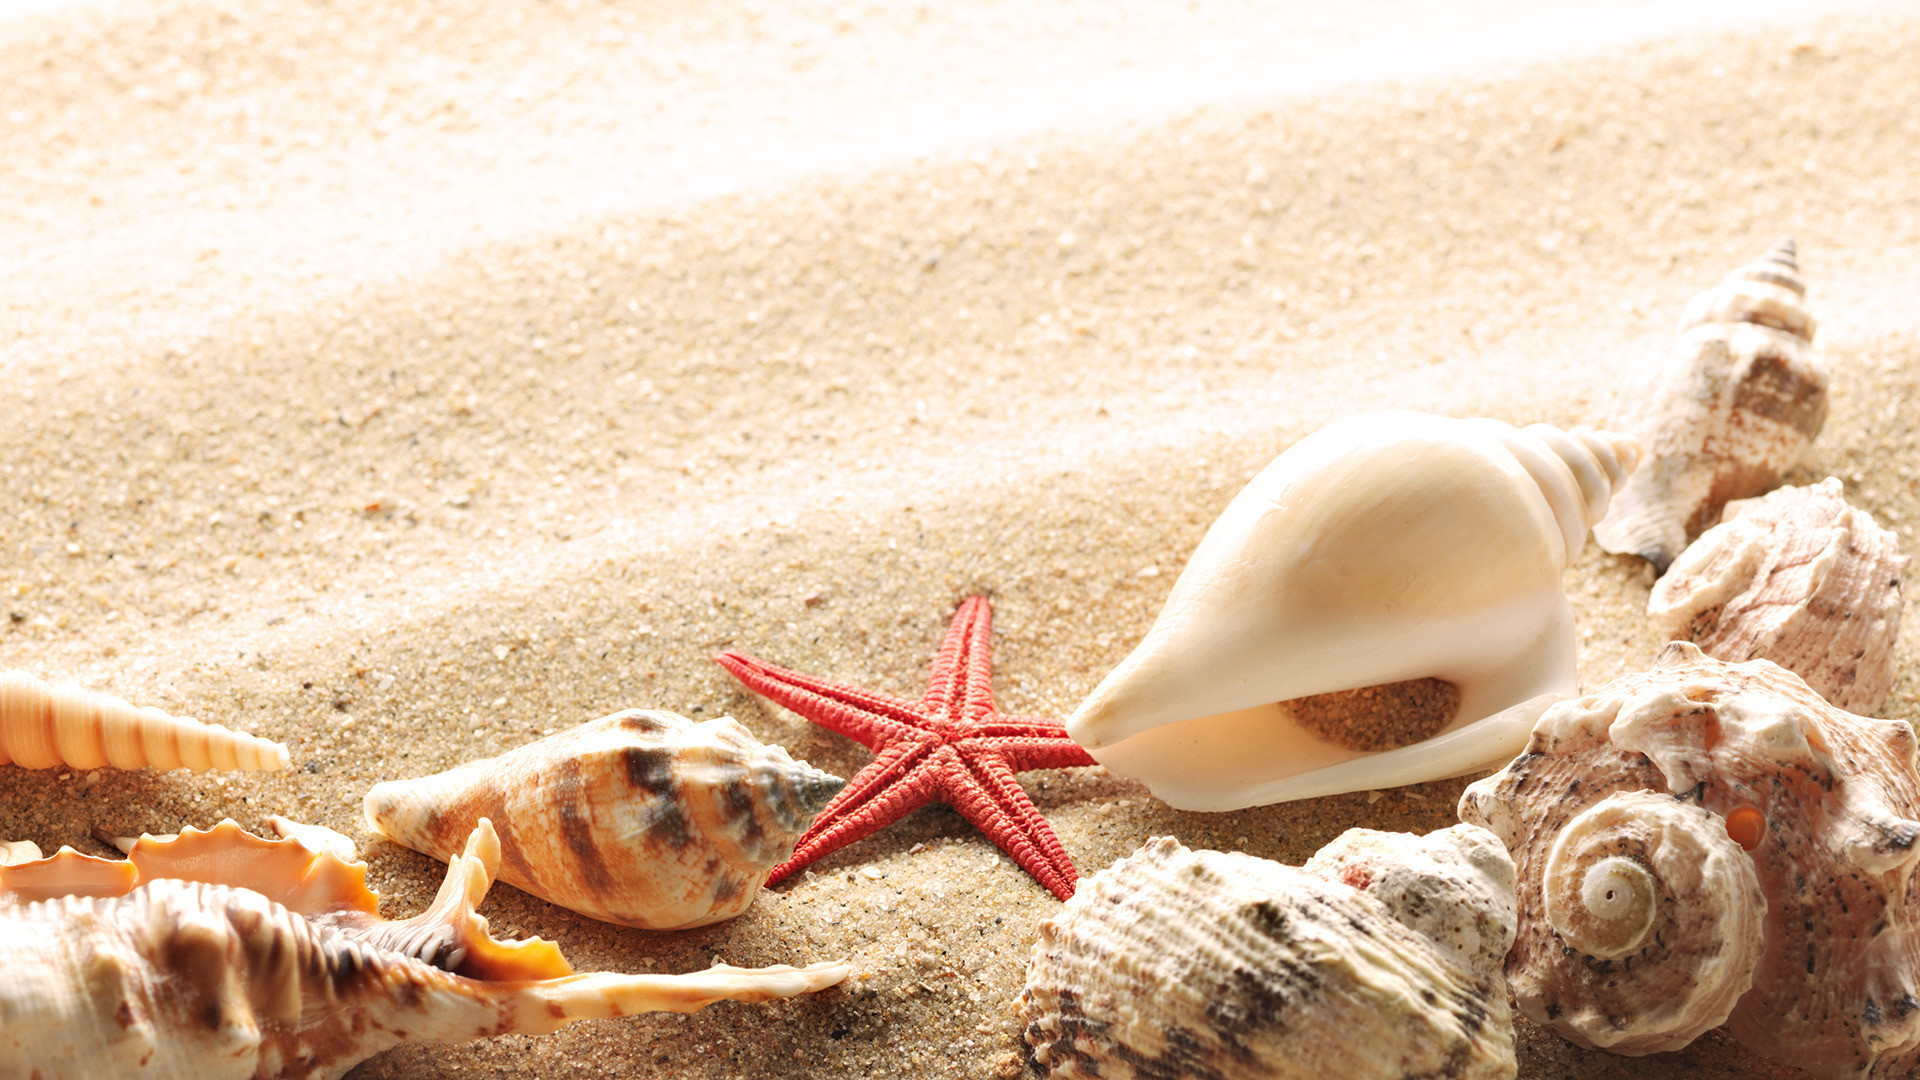 Shells-on-the-golden-sand-from-the-beach-Summers-Seasons-download-beautif-wallpaper-wpc9009090